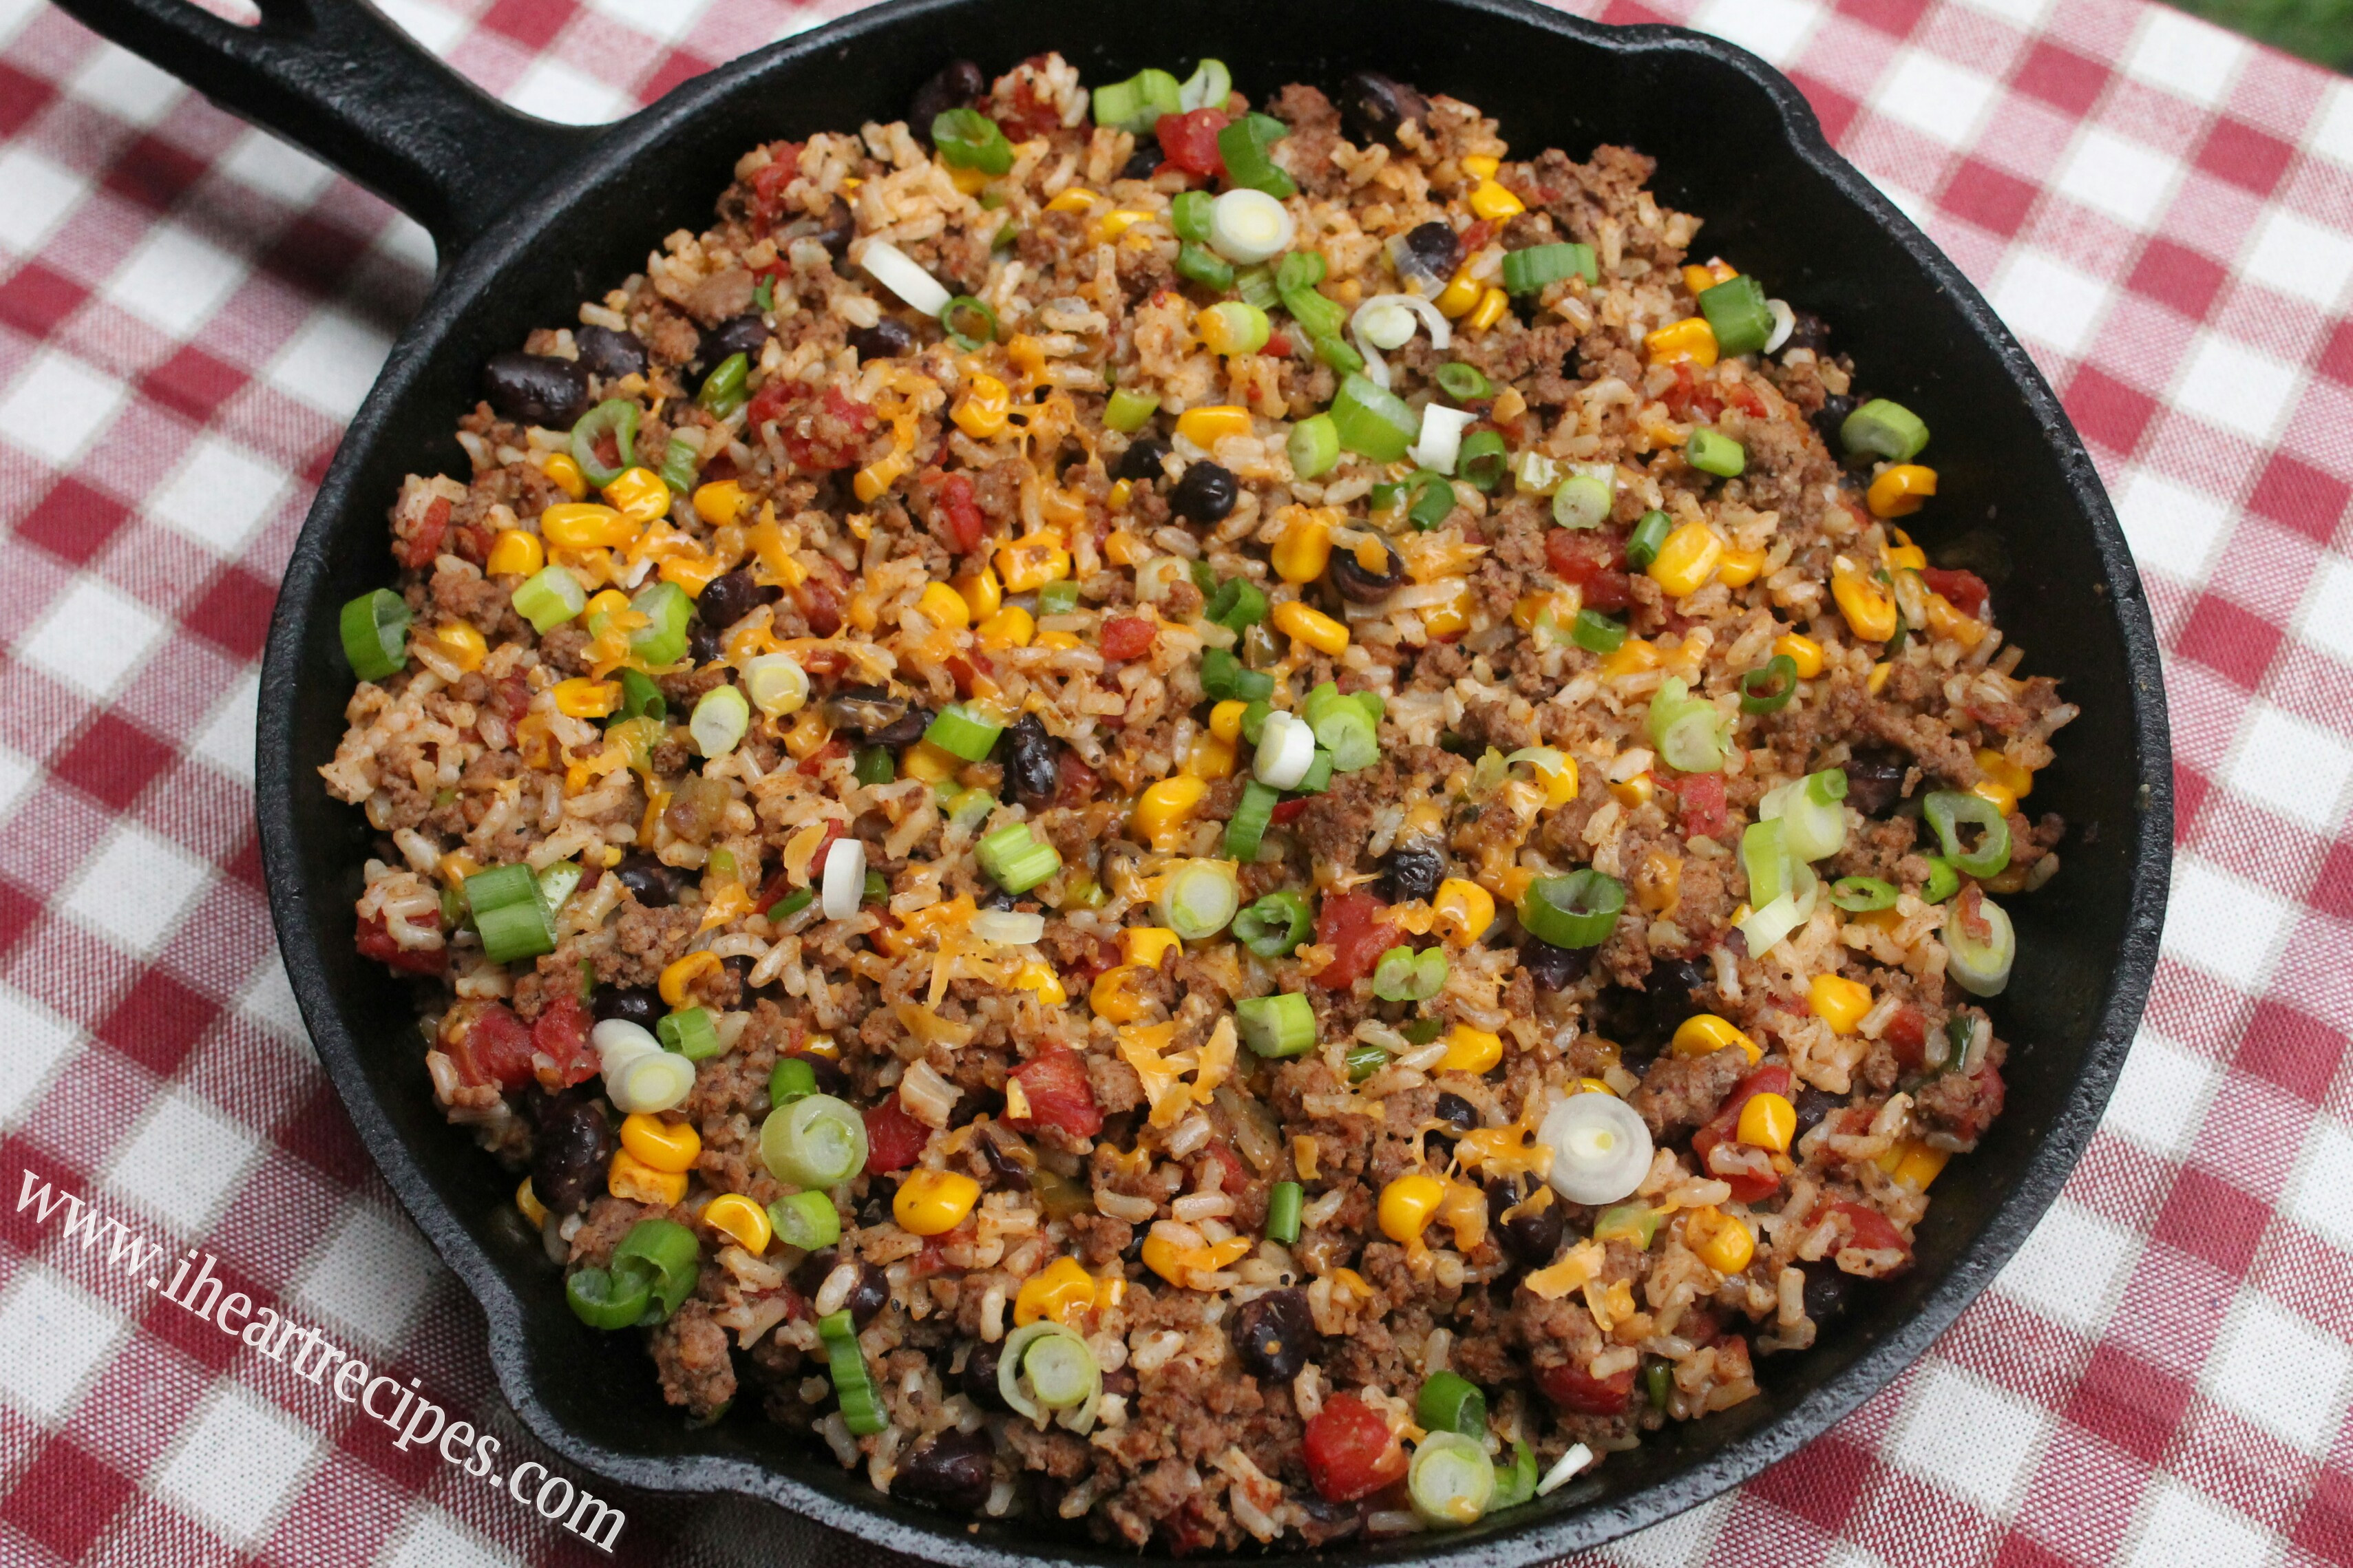 Heart Healthy Ground Beef Recipes  Tex Mex Ground Beef Skillet I Heart Recipes